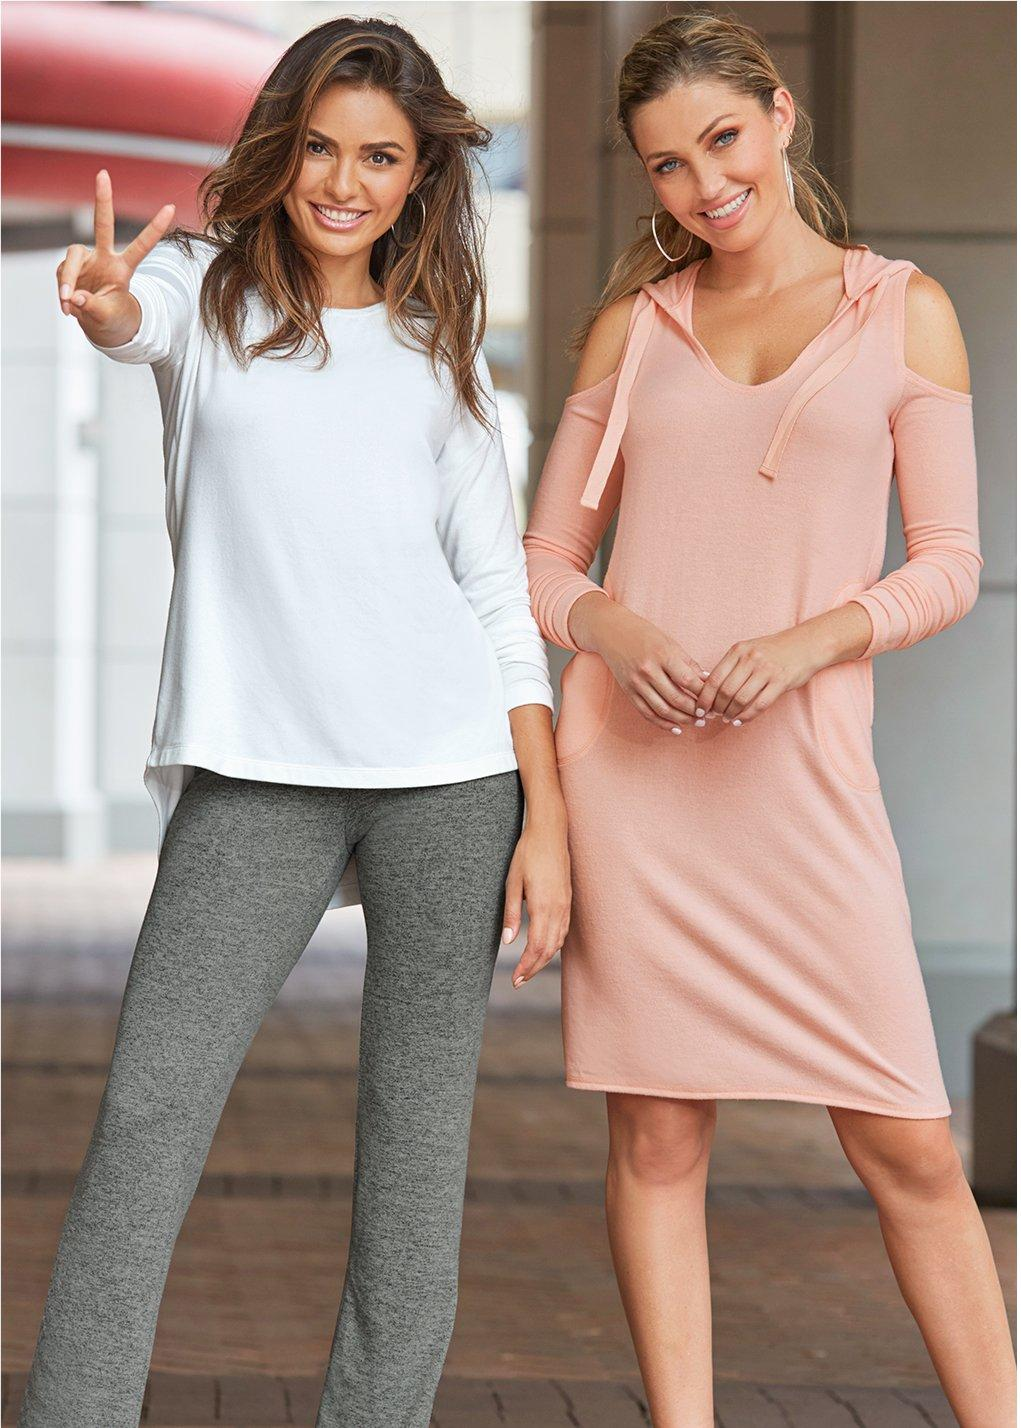 left: model wearing white sweater over gray yoga pants and holding up the peace sign. right: model wearing pink hooded cold-shoulder sports dress.